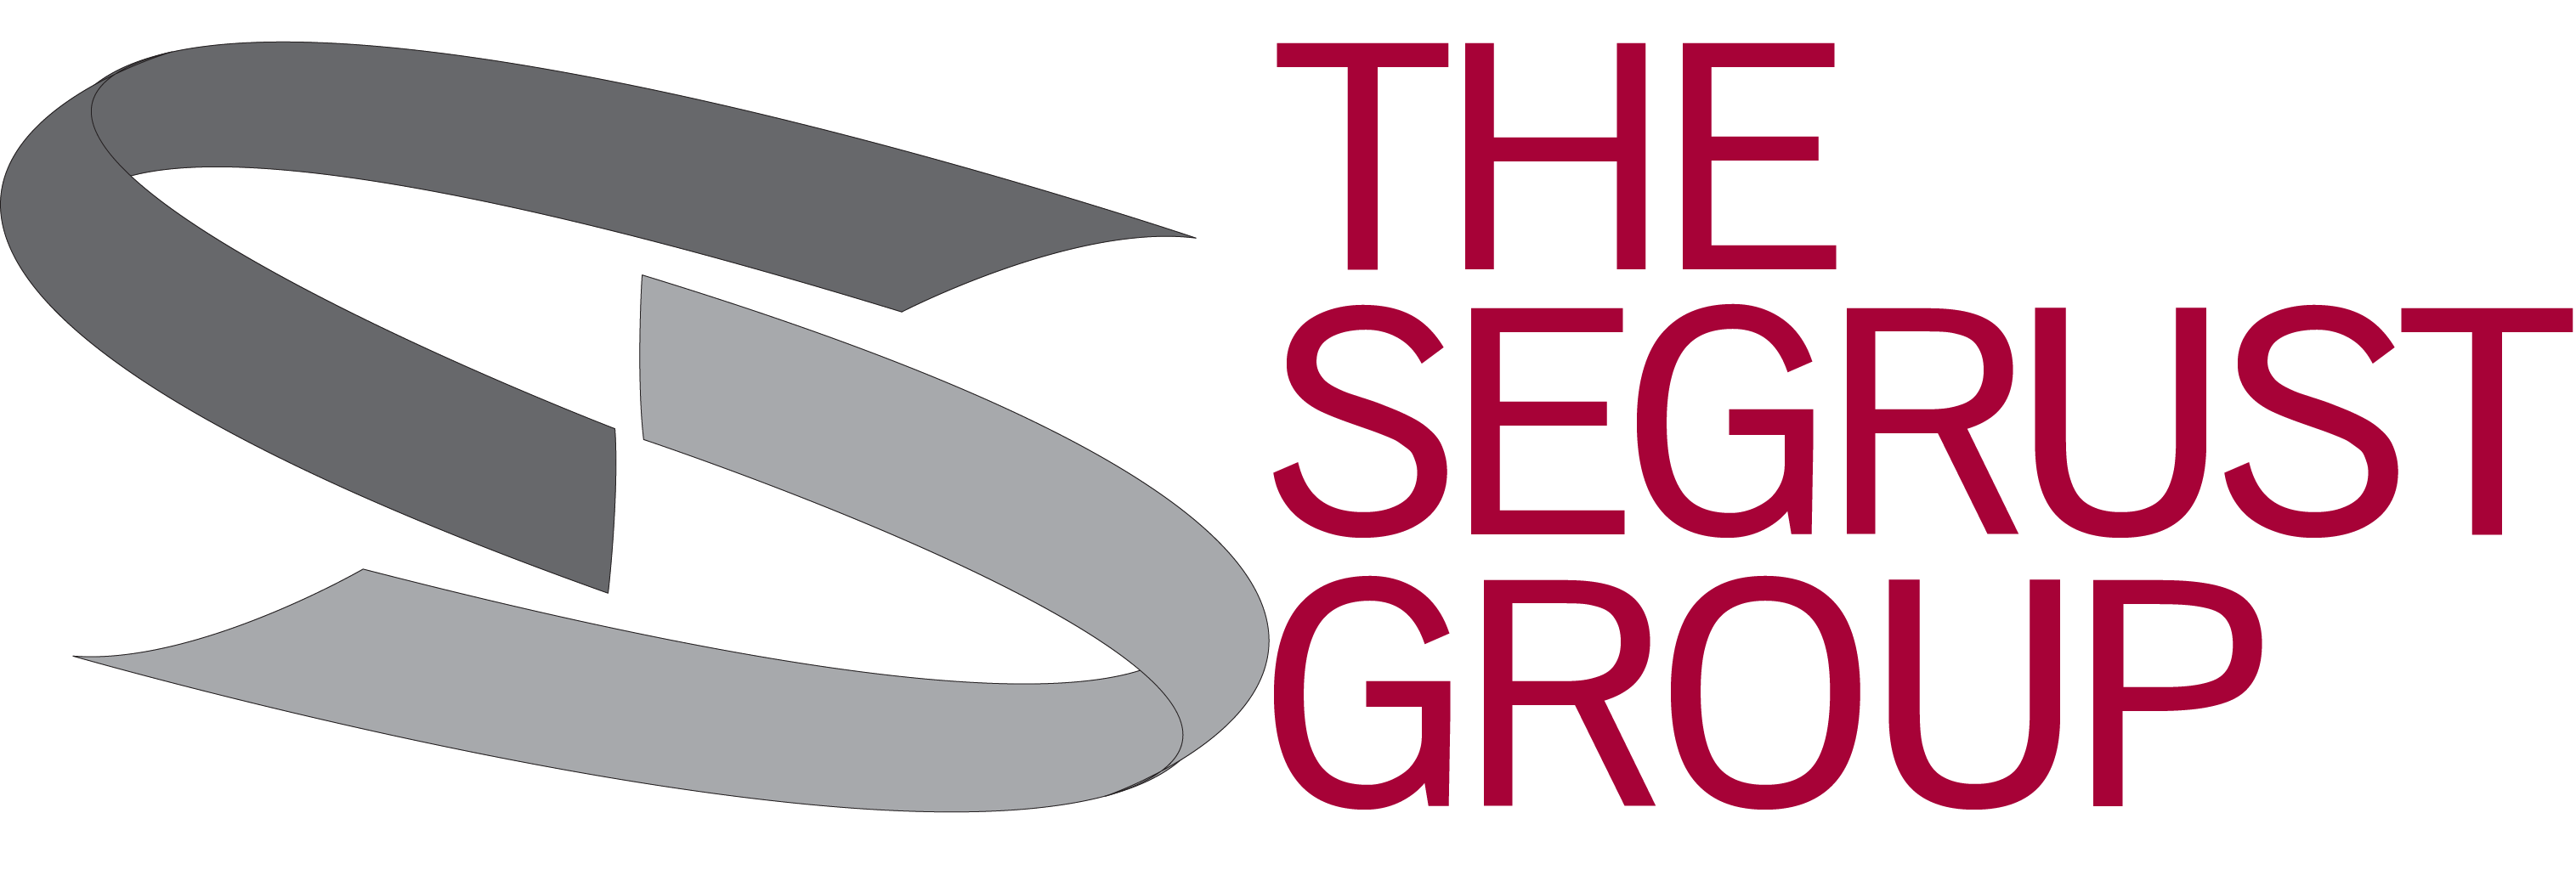 The Segrust Group Logo